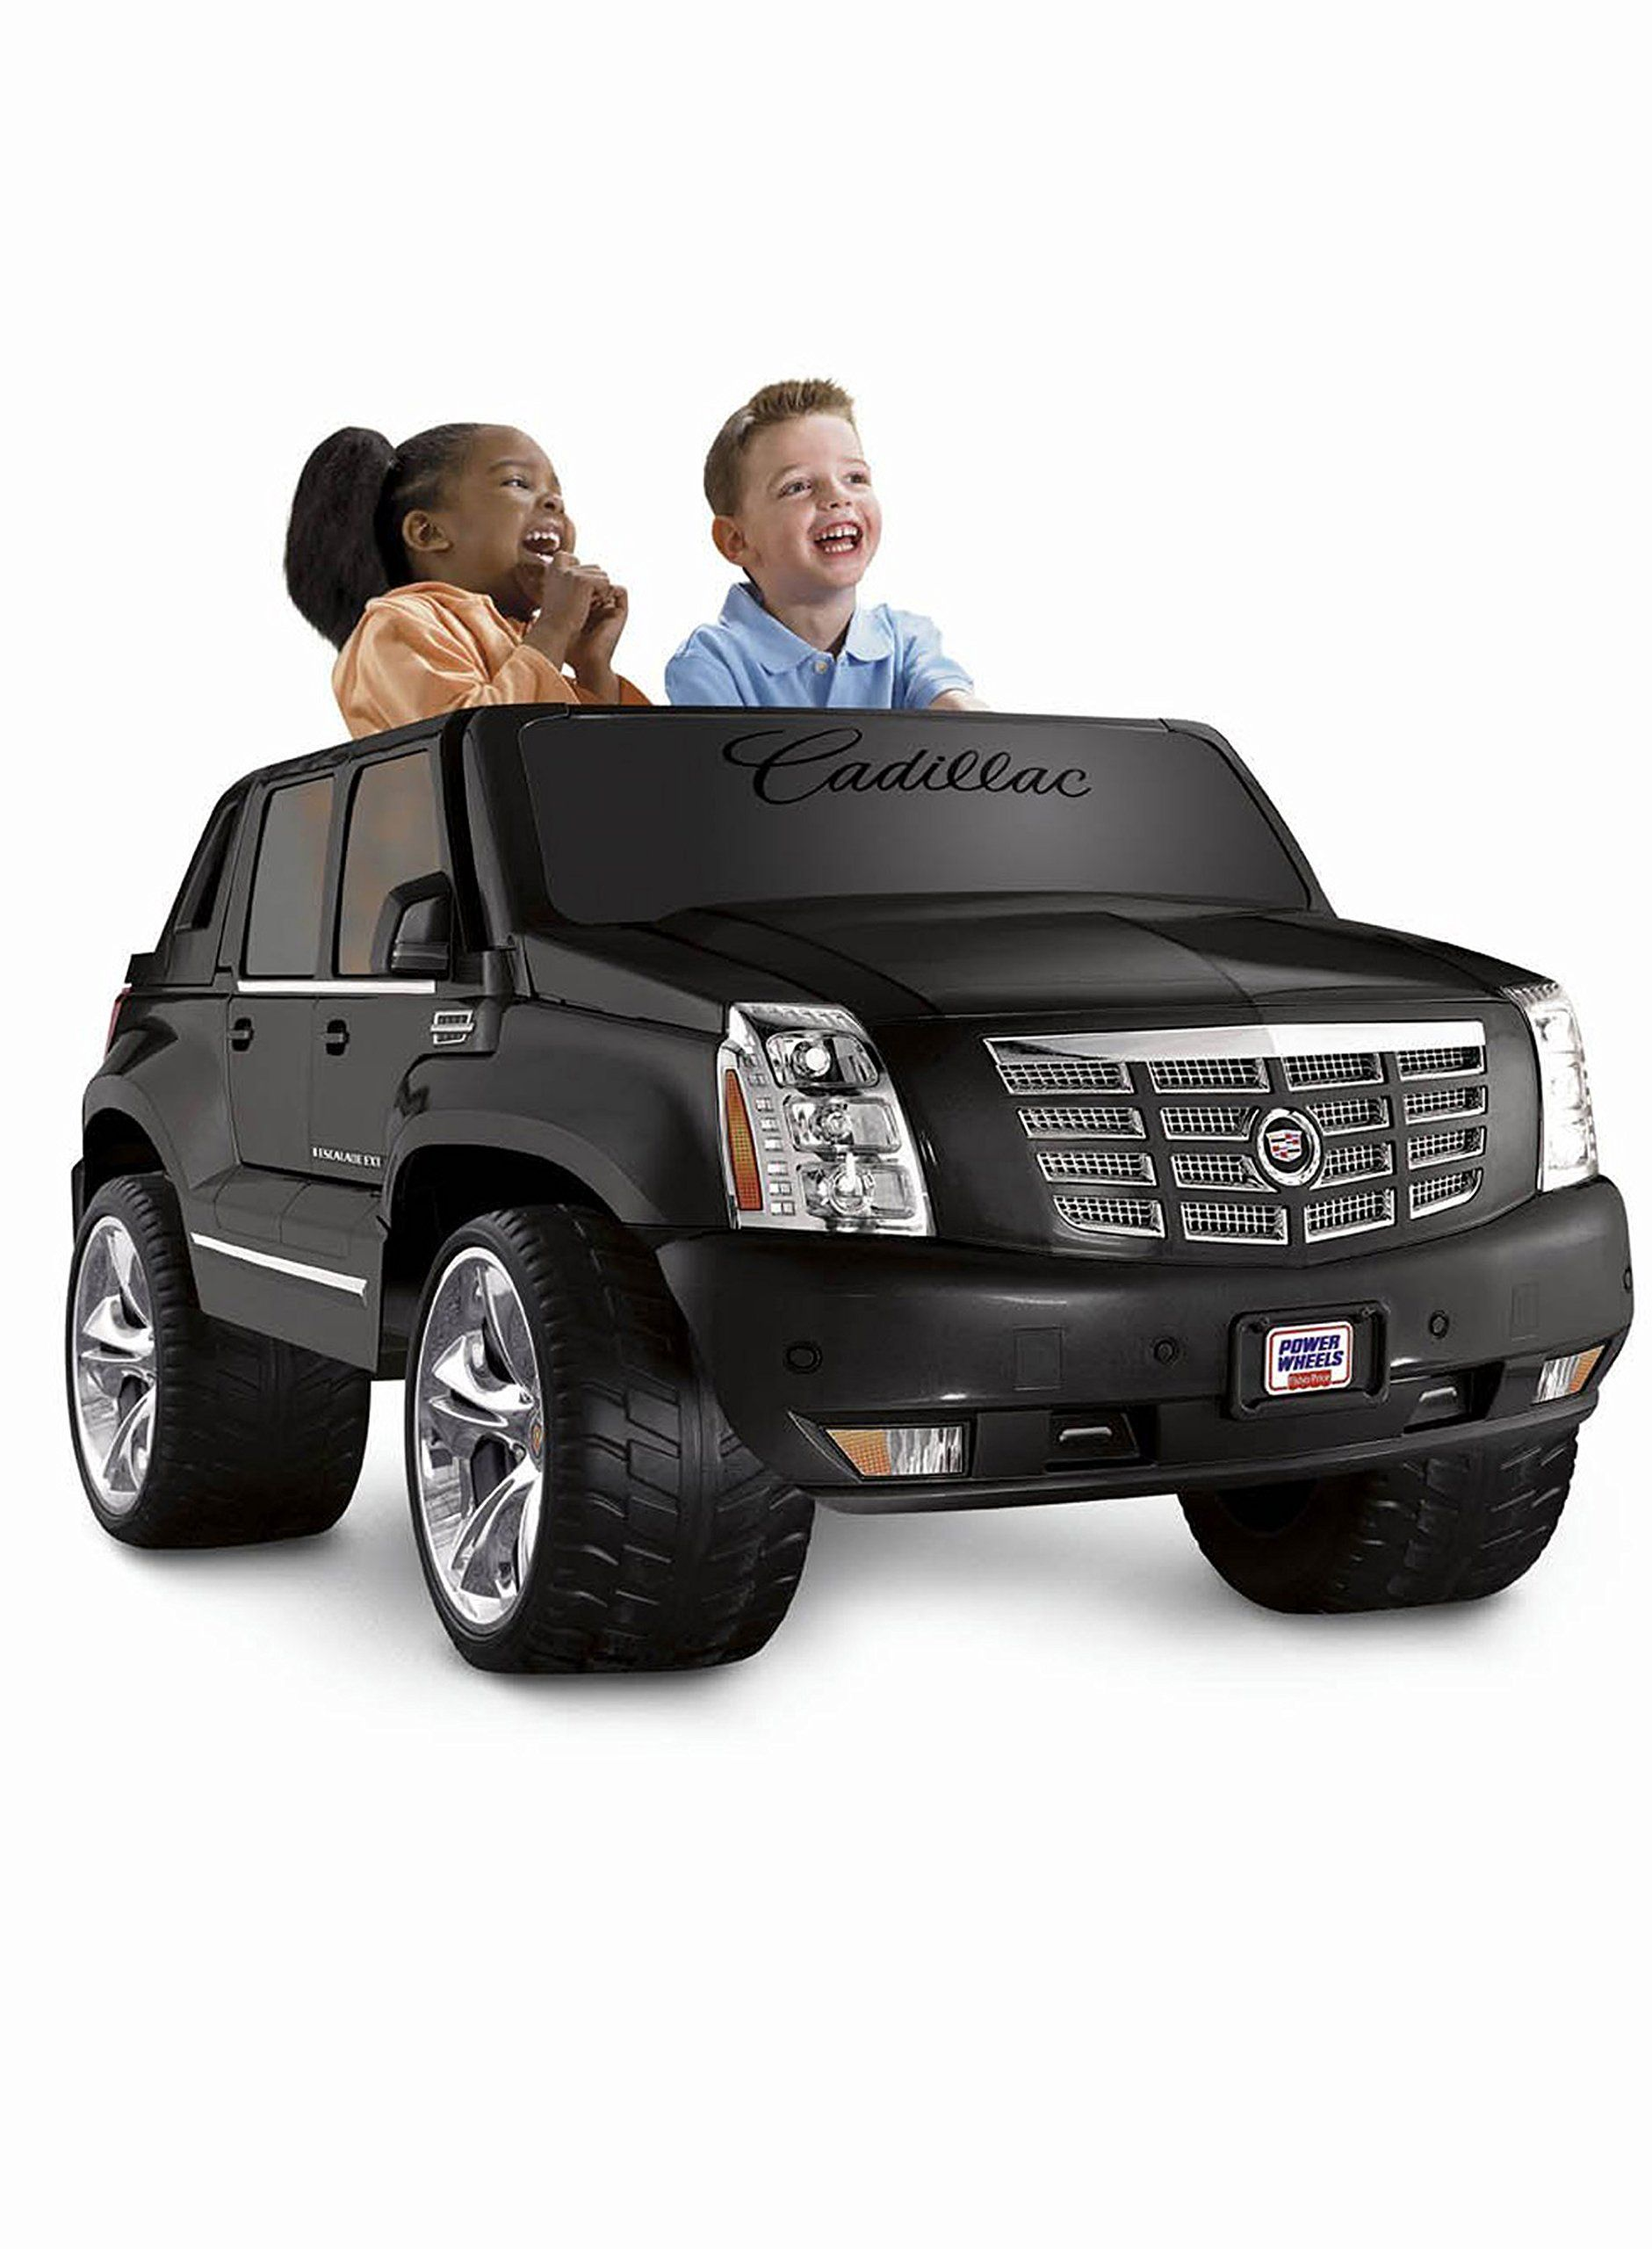 Fisher Price Wheels Cadillac Escalade Read This Review Before Ing Your Kids